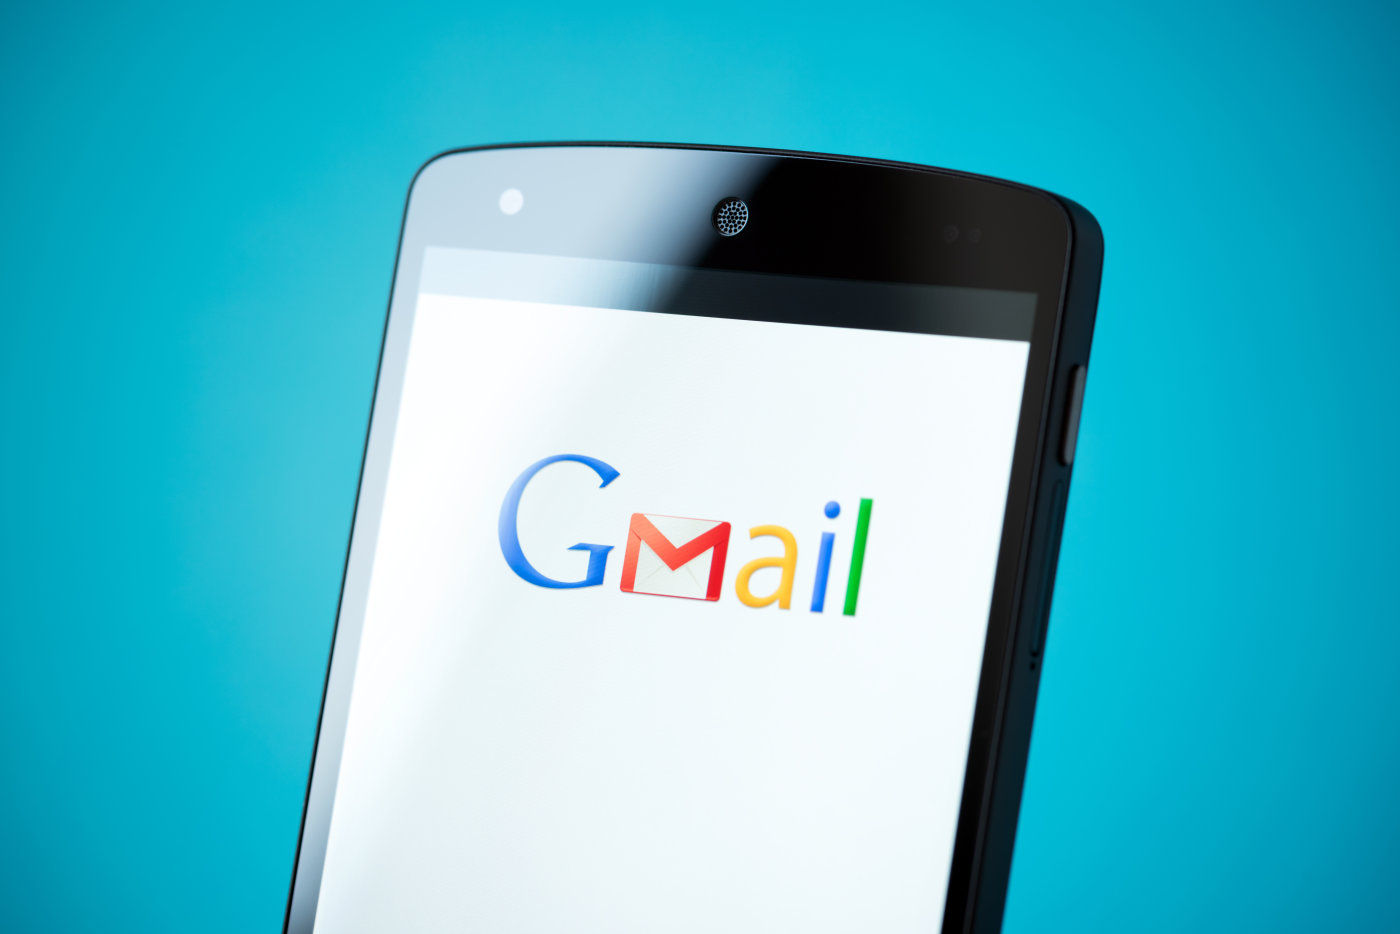 Email App for Gmail Exchange - Android - Google Play